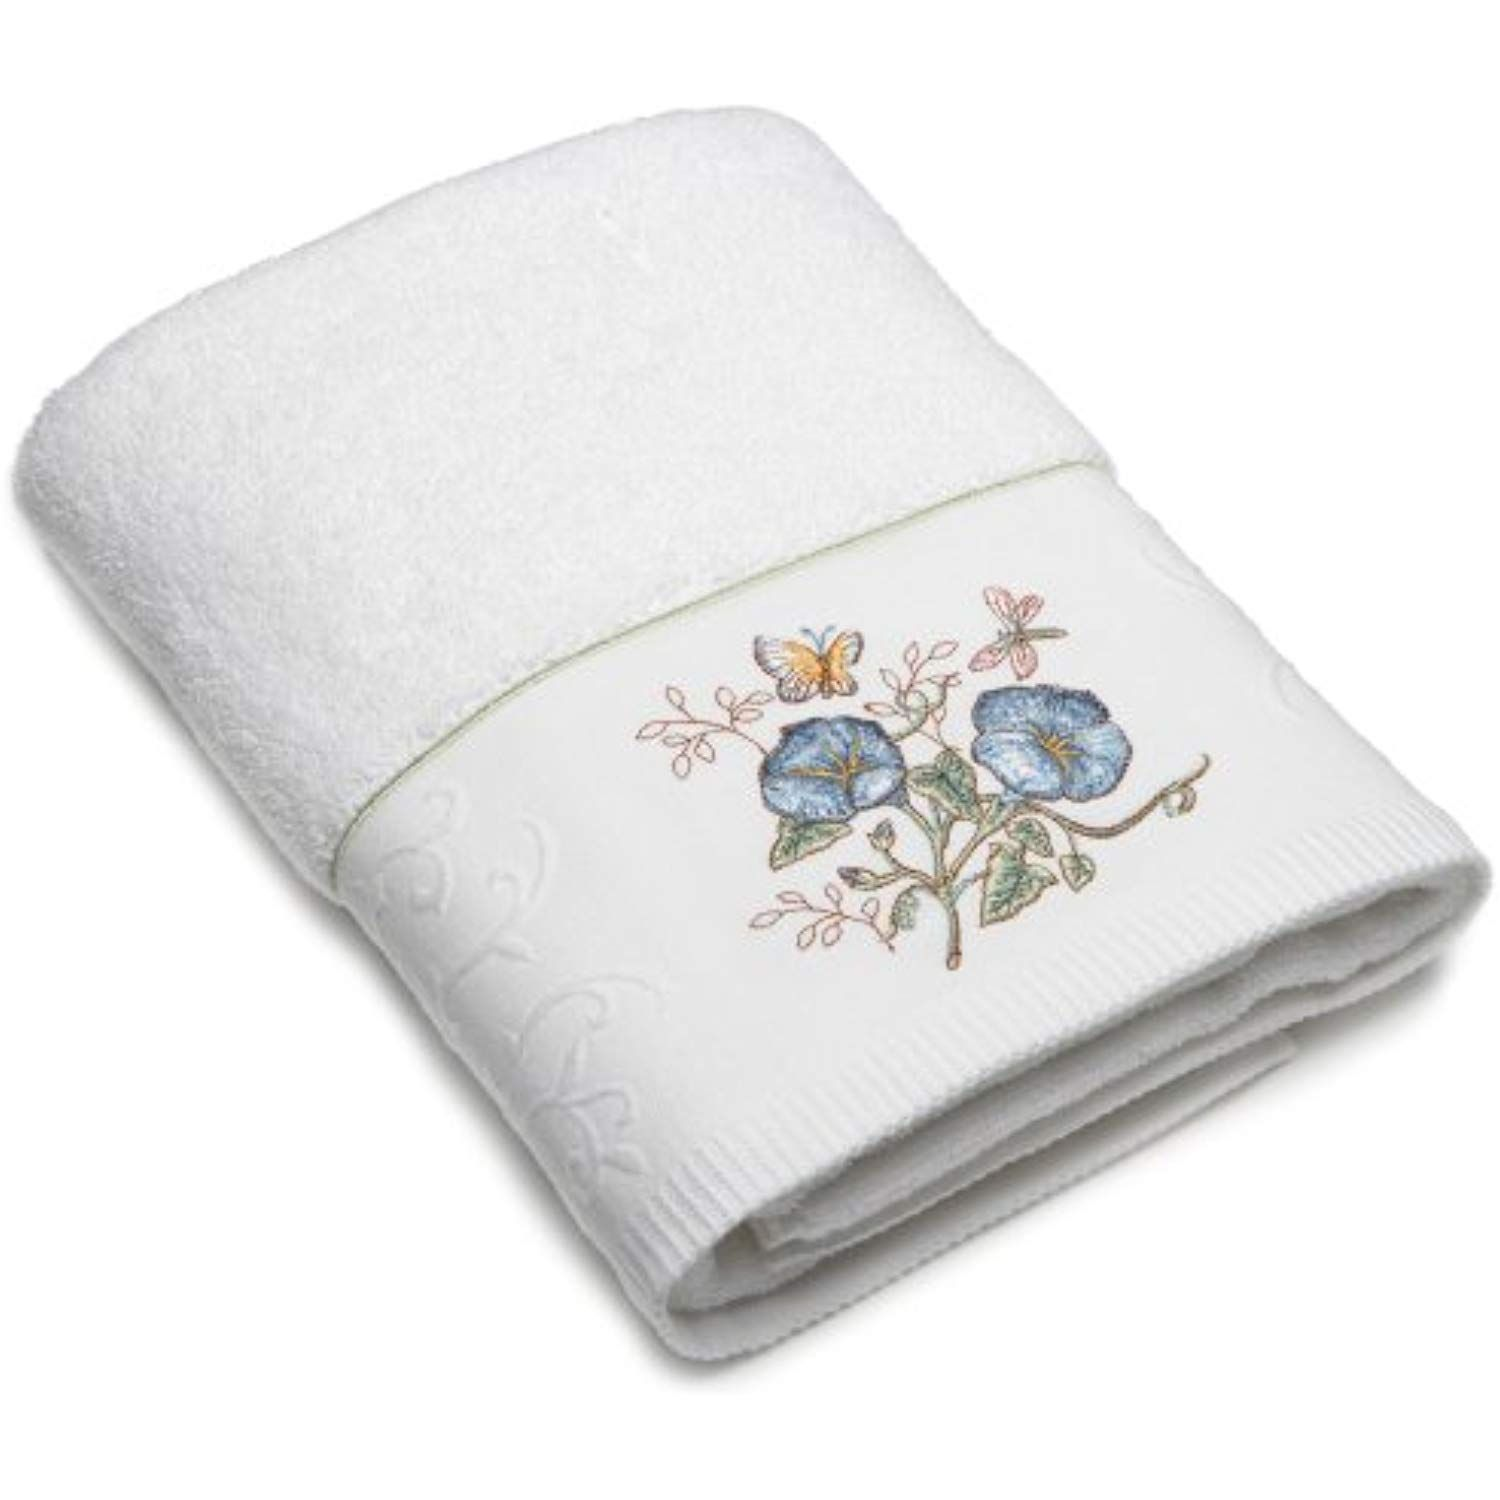 Lenox Butterfly Meadow Embroidered Hand Towel Blue Flower